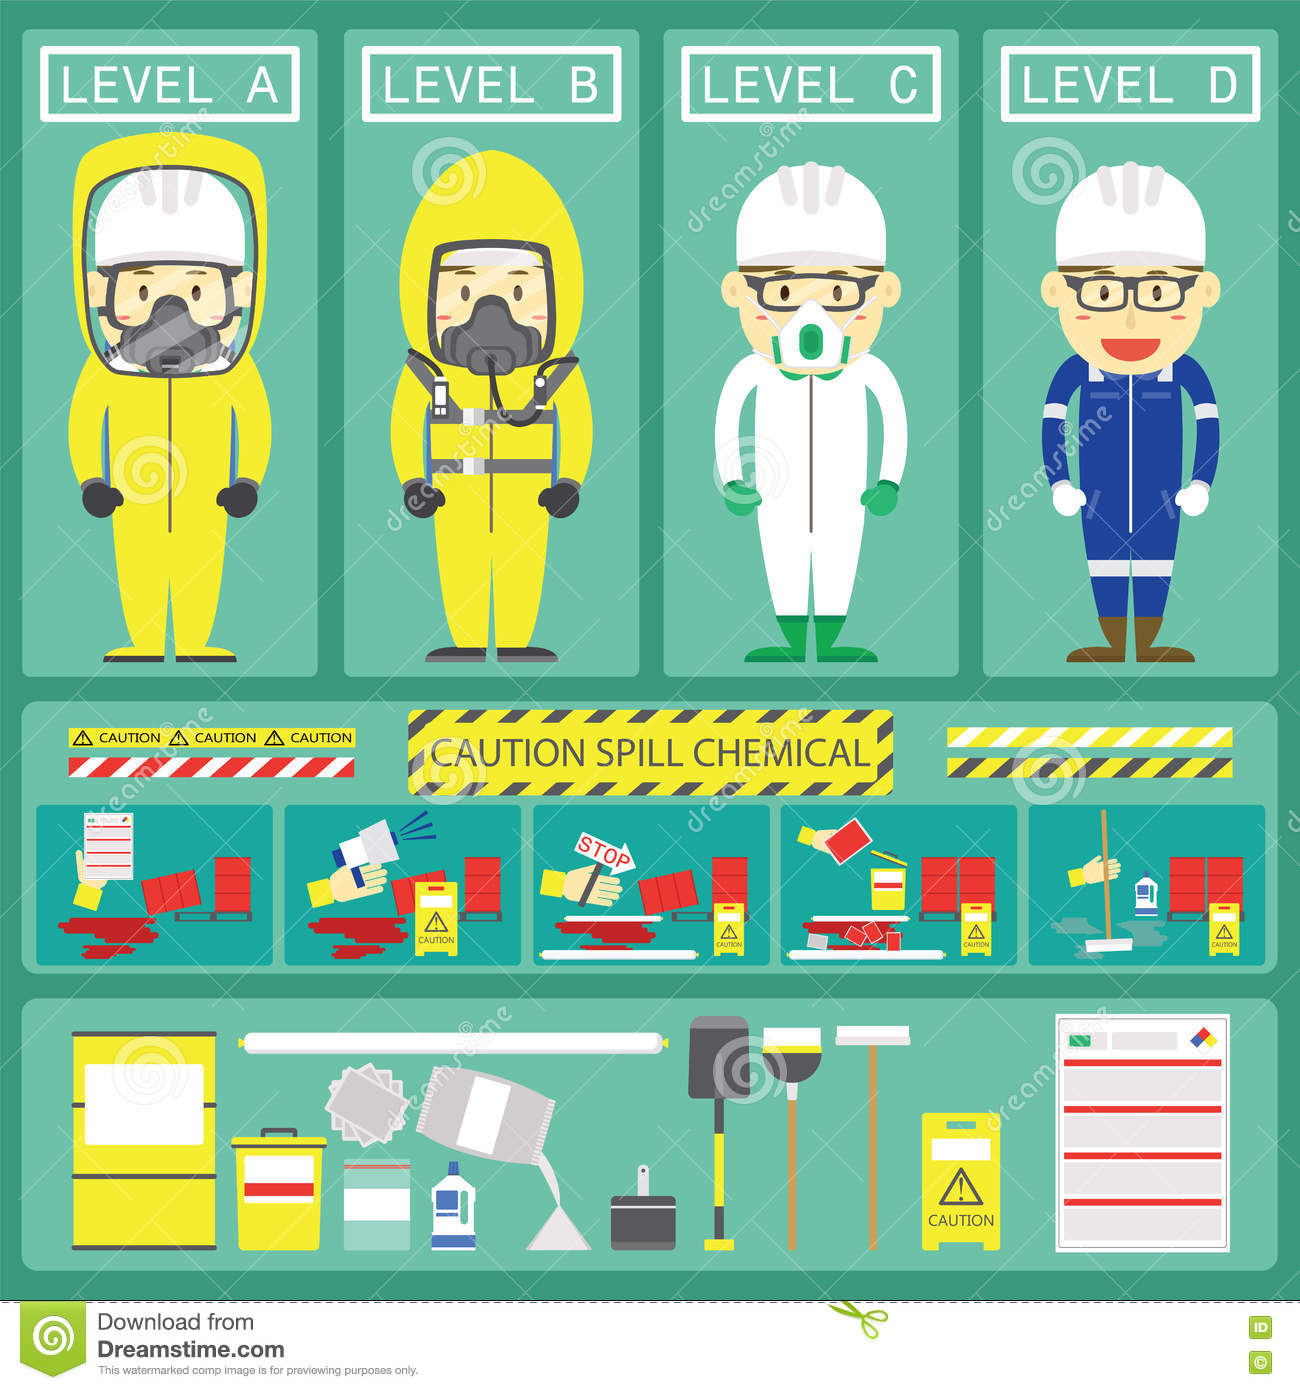 Chemical Spill Response With Level Chemical Suits and Spill Kits